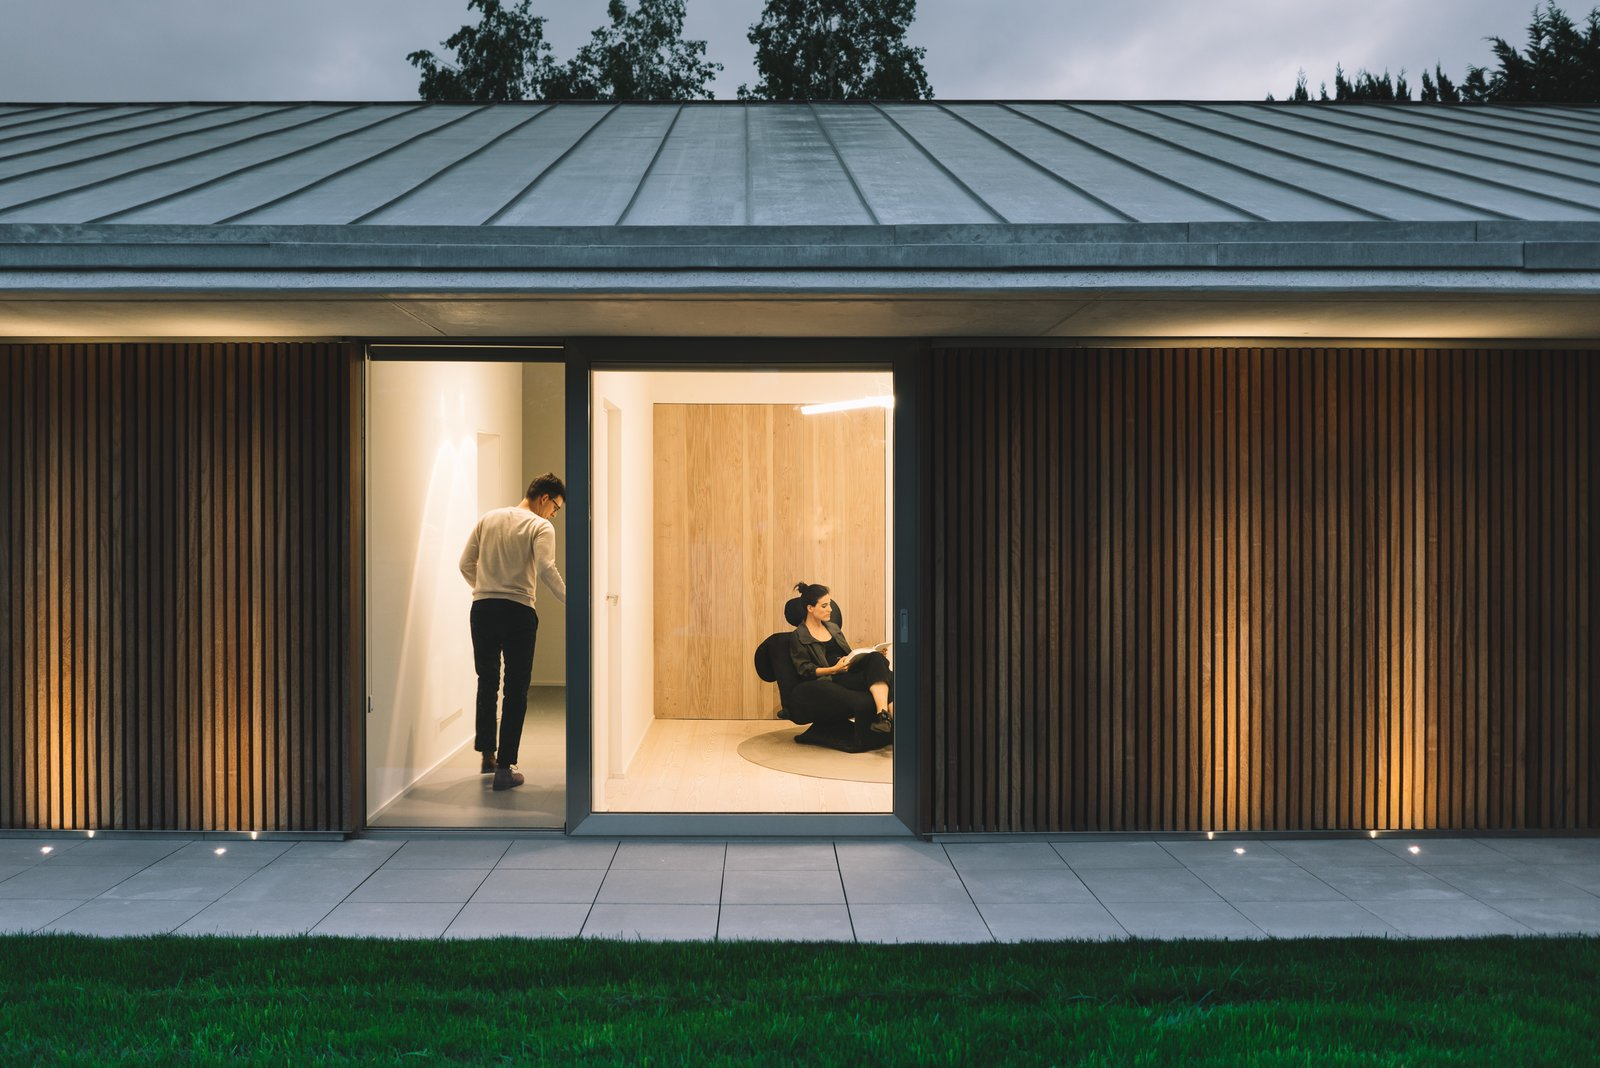 Tagged: Outdoor, Garden, Front Yard, Grass, Gardens, Wood Patio, Porch, Deck, Metal Patio, Porch, Deck, Post Lighting, and Concrete Patio, Porch, Deck.  The Öcher House by MLMR Architecture Consultancy